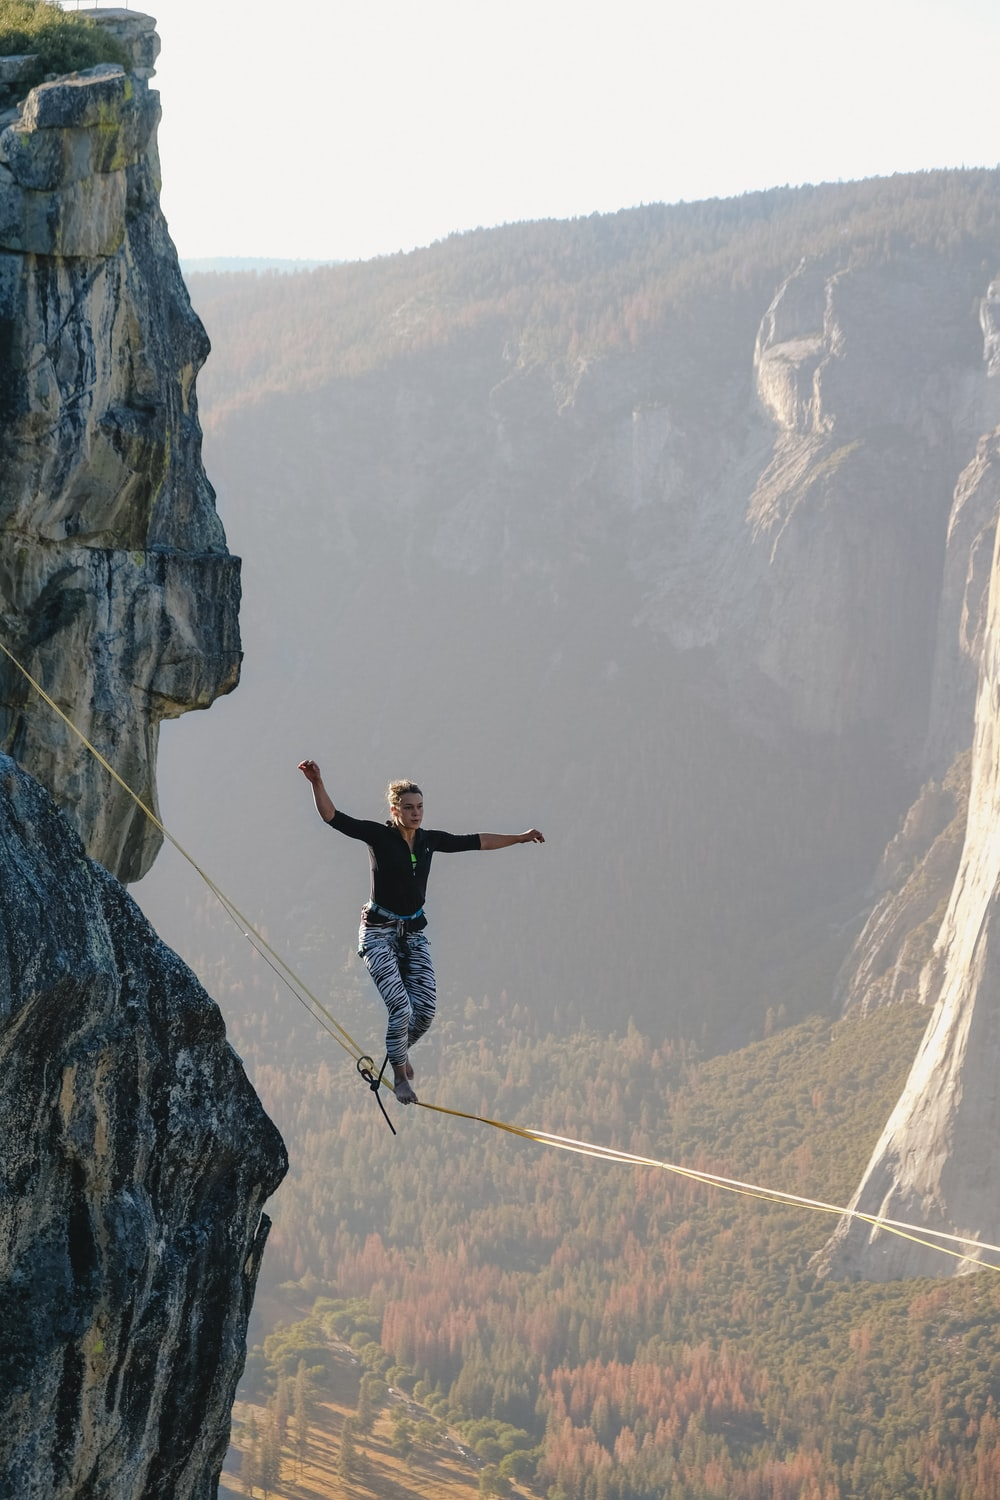 A woman walking on a tightrope high up in the Yosemite Valley